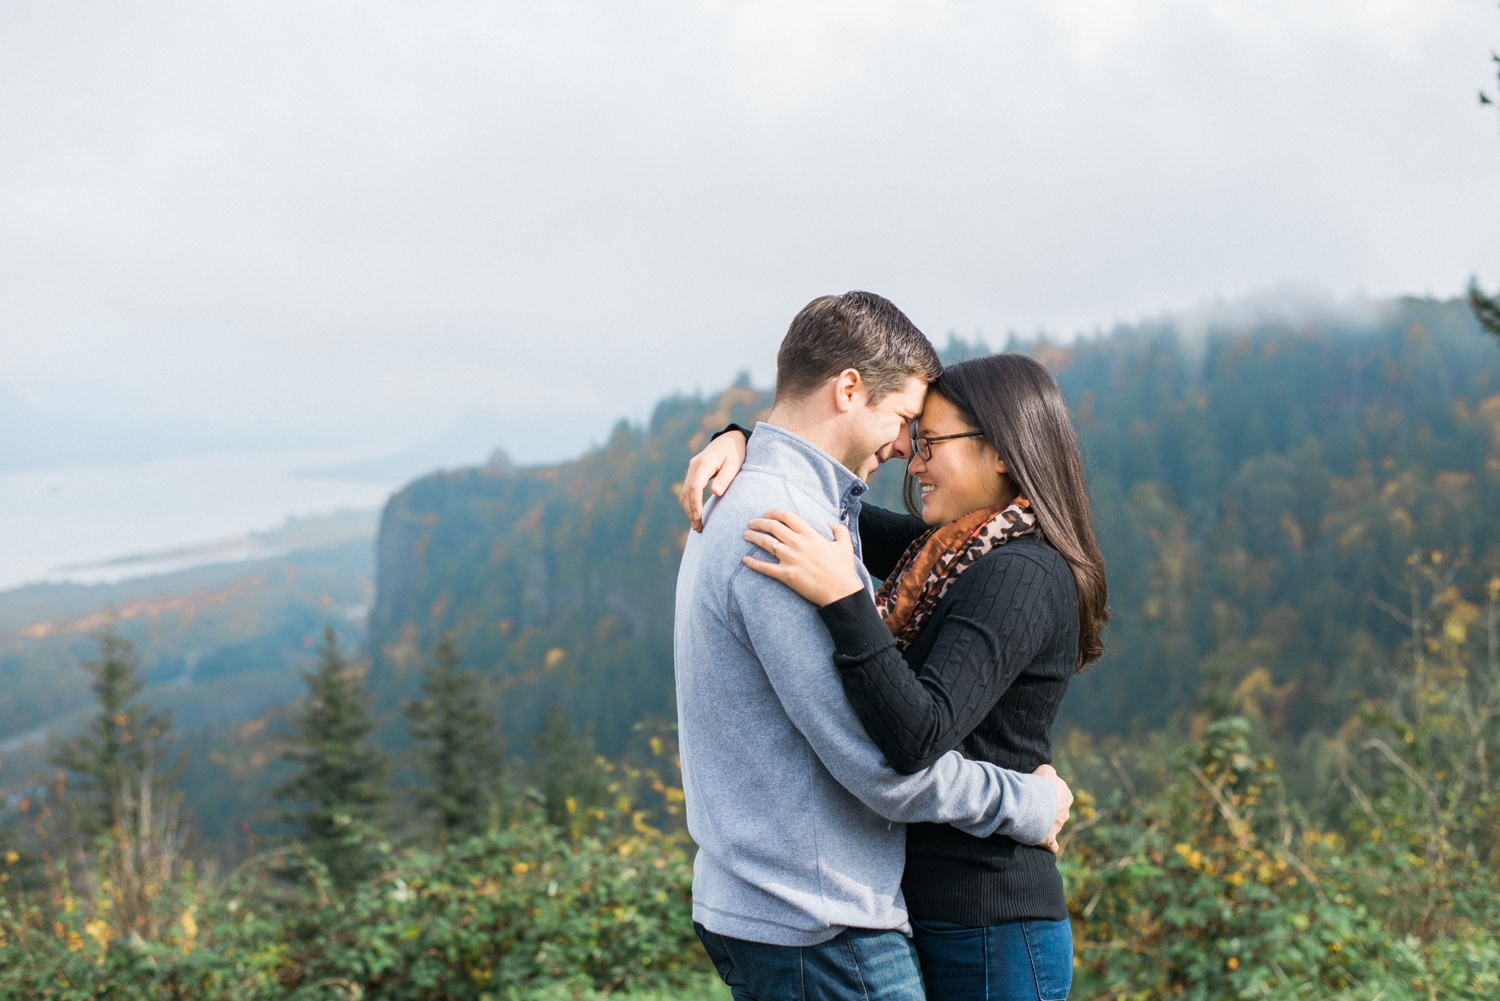 portland-engagement-columbia-river-gorge-latourell-waterfall-autumn-fall-crown-point-shelley-marie-photo-03.jpg